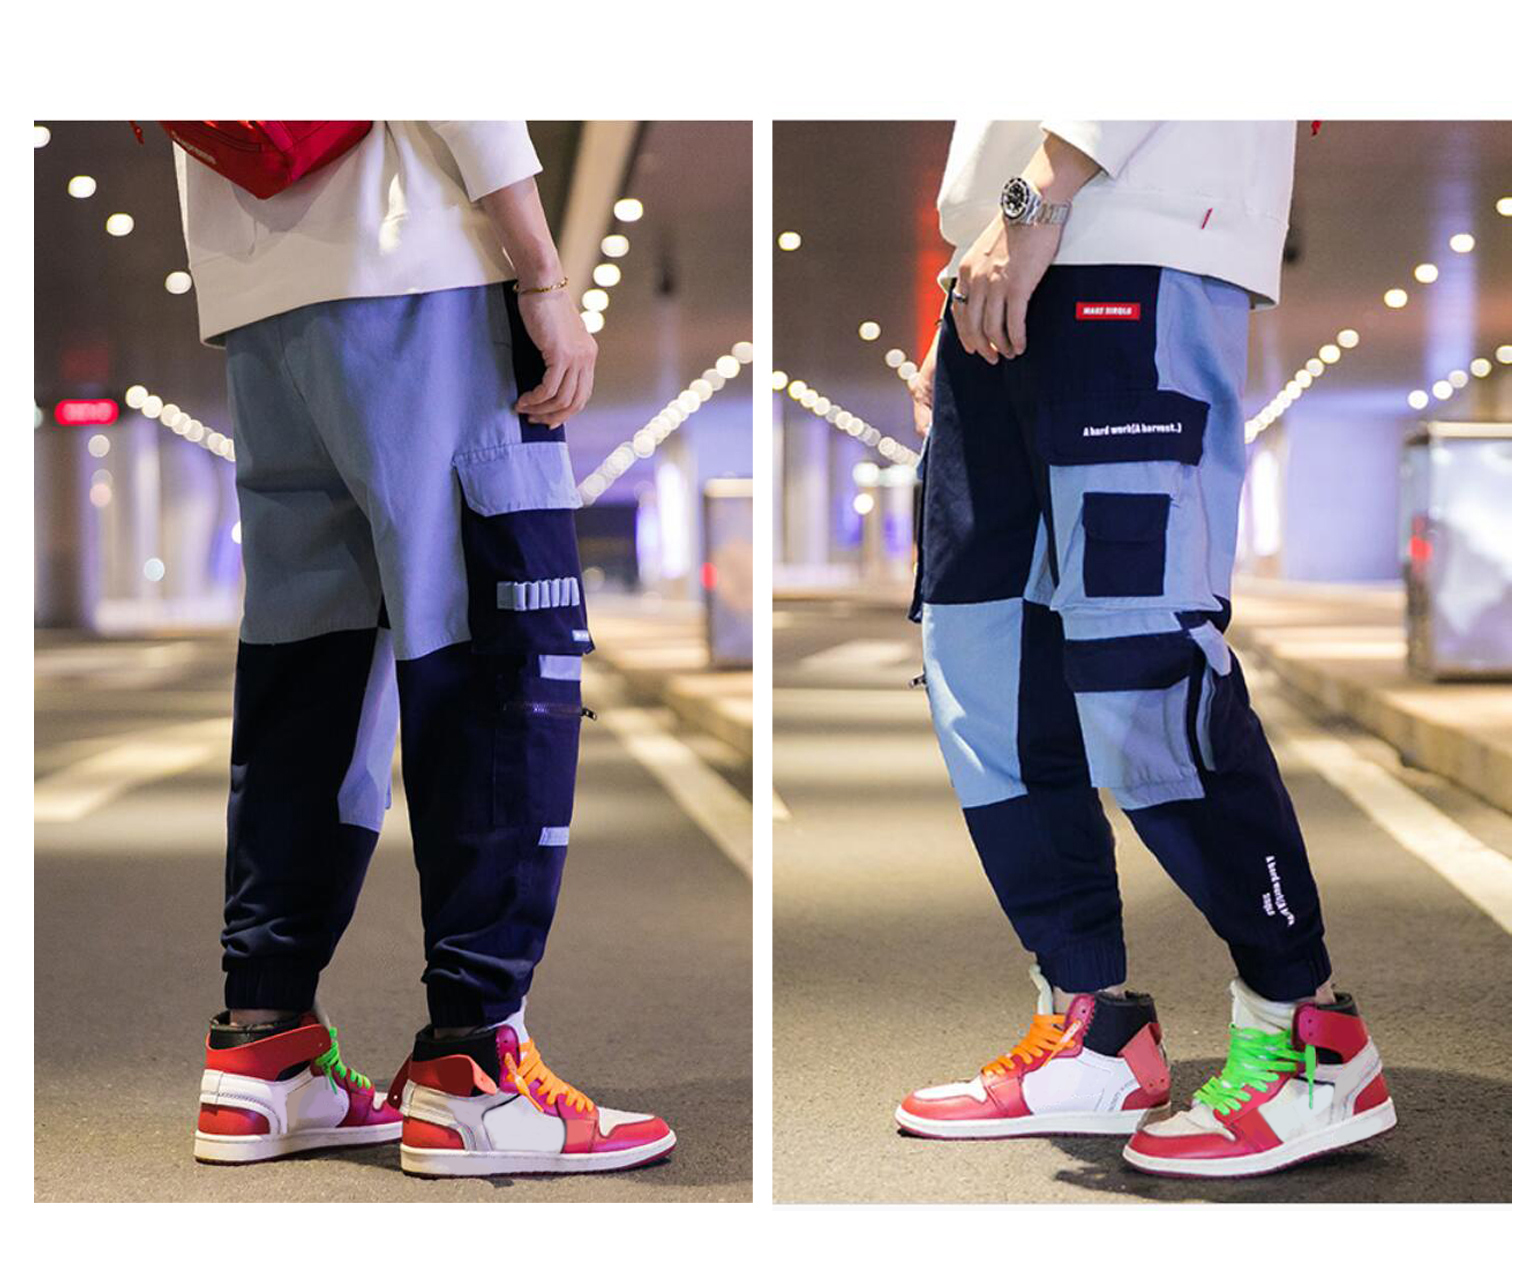 Men's Casual Street Fashion Trousers Cargo Combat Pants Casual Pants For Adolescents And Young Boys, Multi Pockets Work Pants